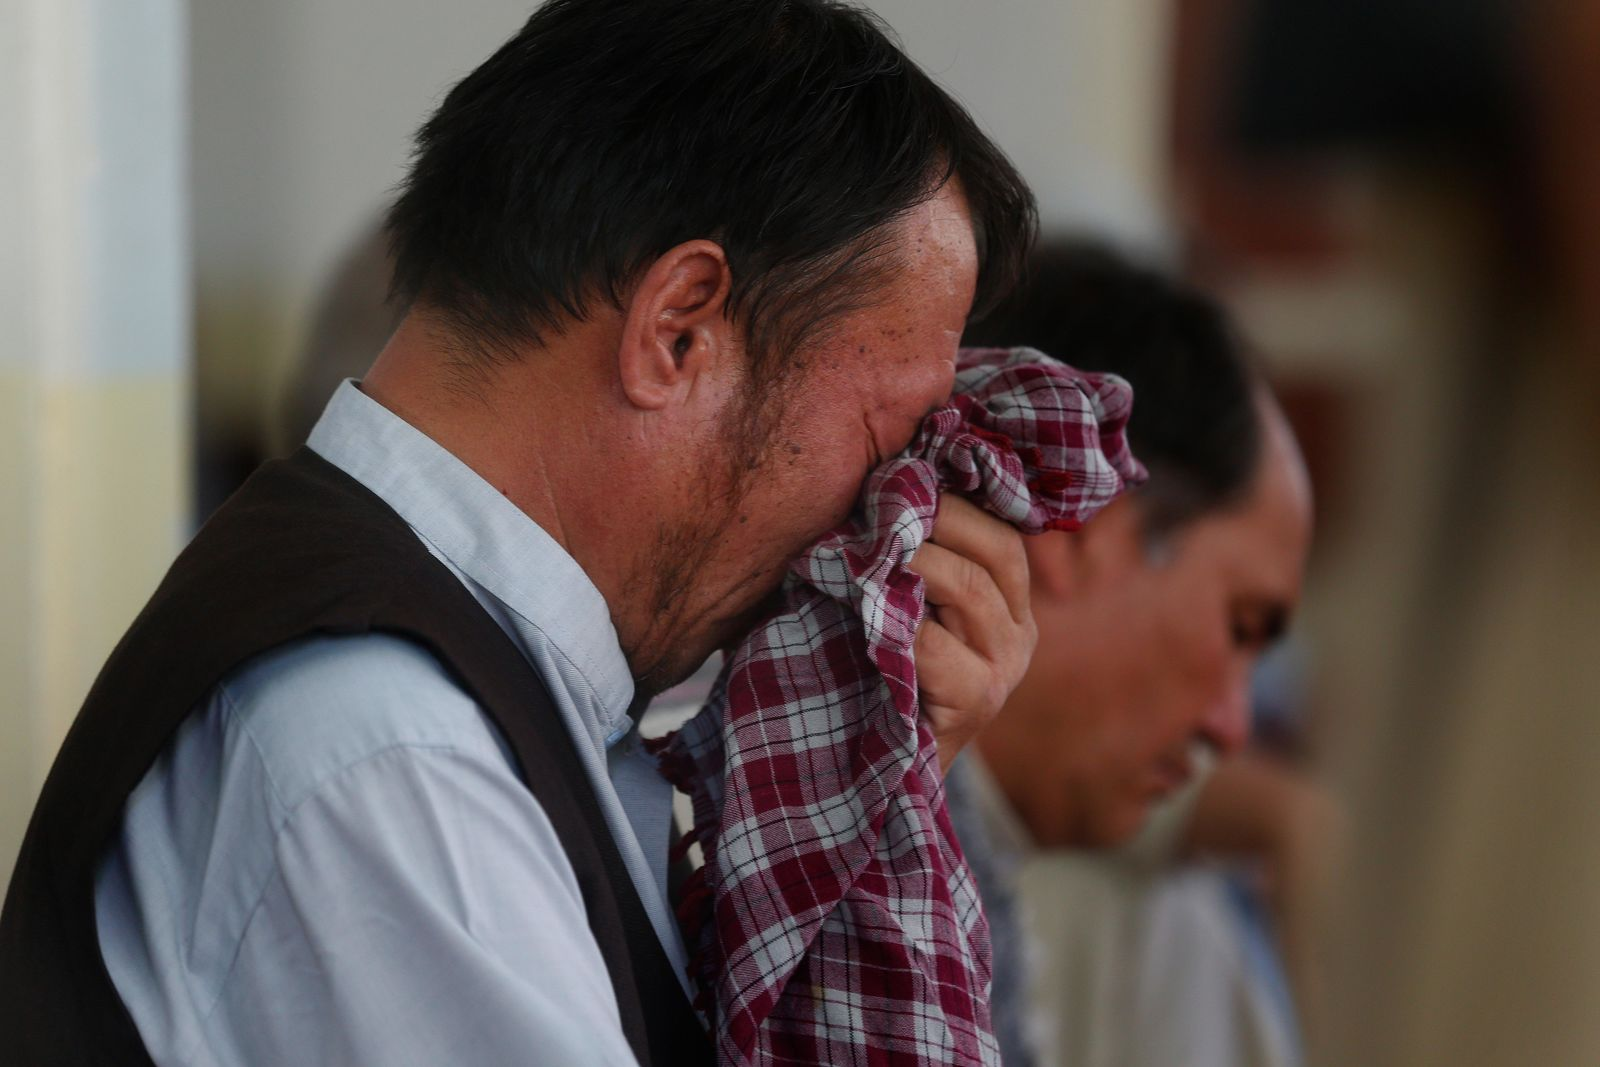 Men mourn for the victims of the Dubai City wedding hall bombing during a memorial service at a mosque in Kabul, Afghanistan, Tuesday, Aug. 20, 2019. Hundreds of people have gathered in mosques in Afghanistan's capital for memorials for scores of people killed in a horrific suicide bombing at a Kabul wedding over the weekend. (AP Photo/Rafiq Maqbool)